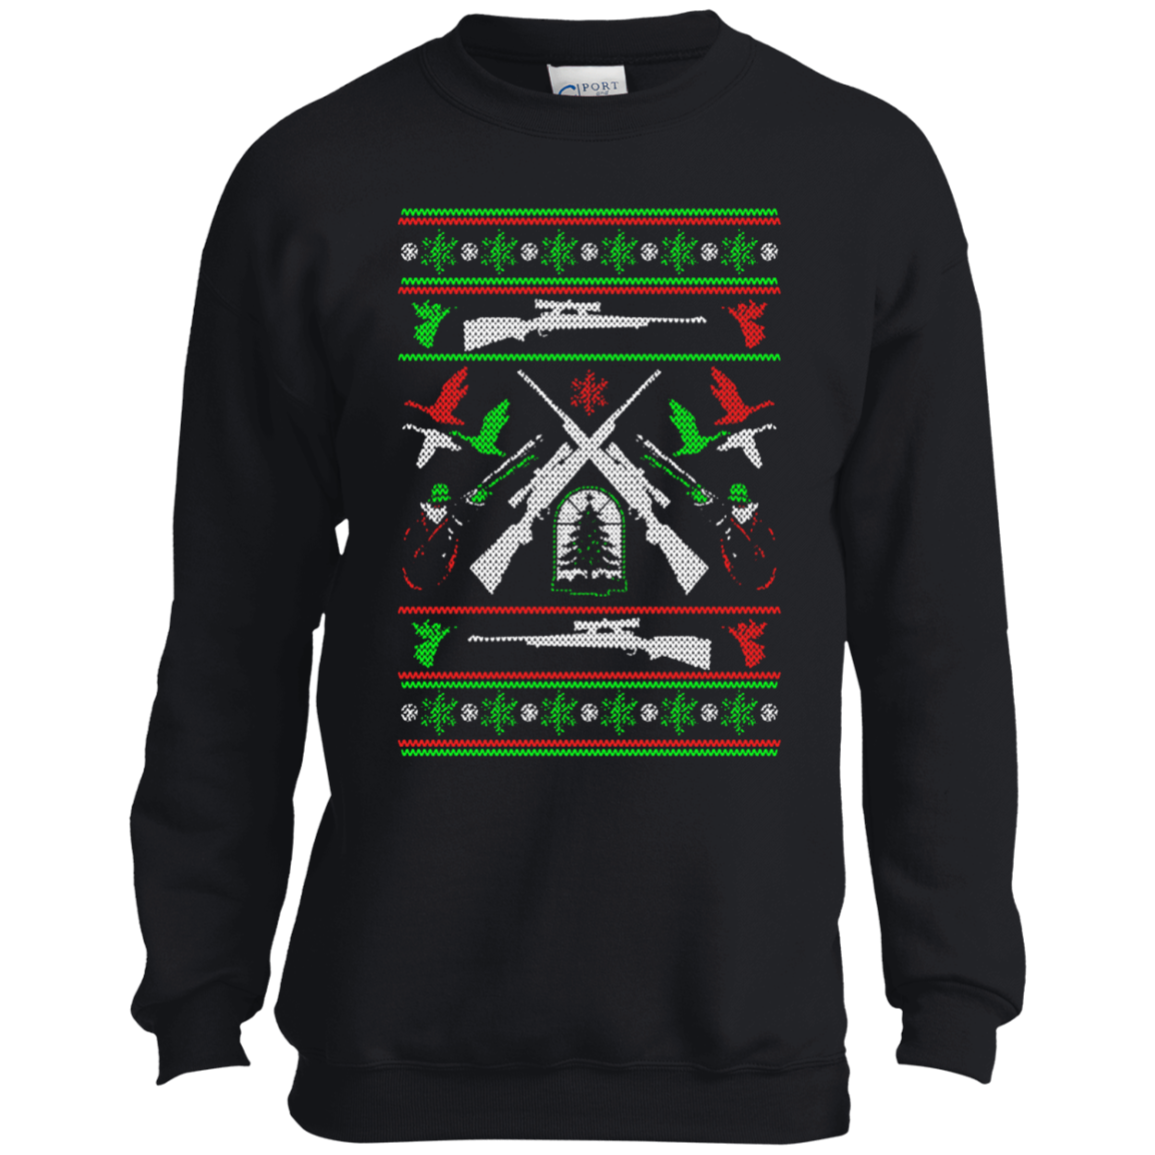 Buy Hunting Ugly Christmas Sweater T-shirt at 10% Off - iSkyTee